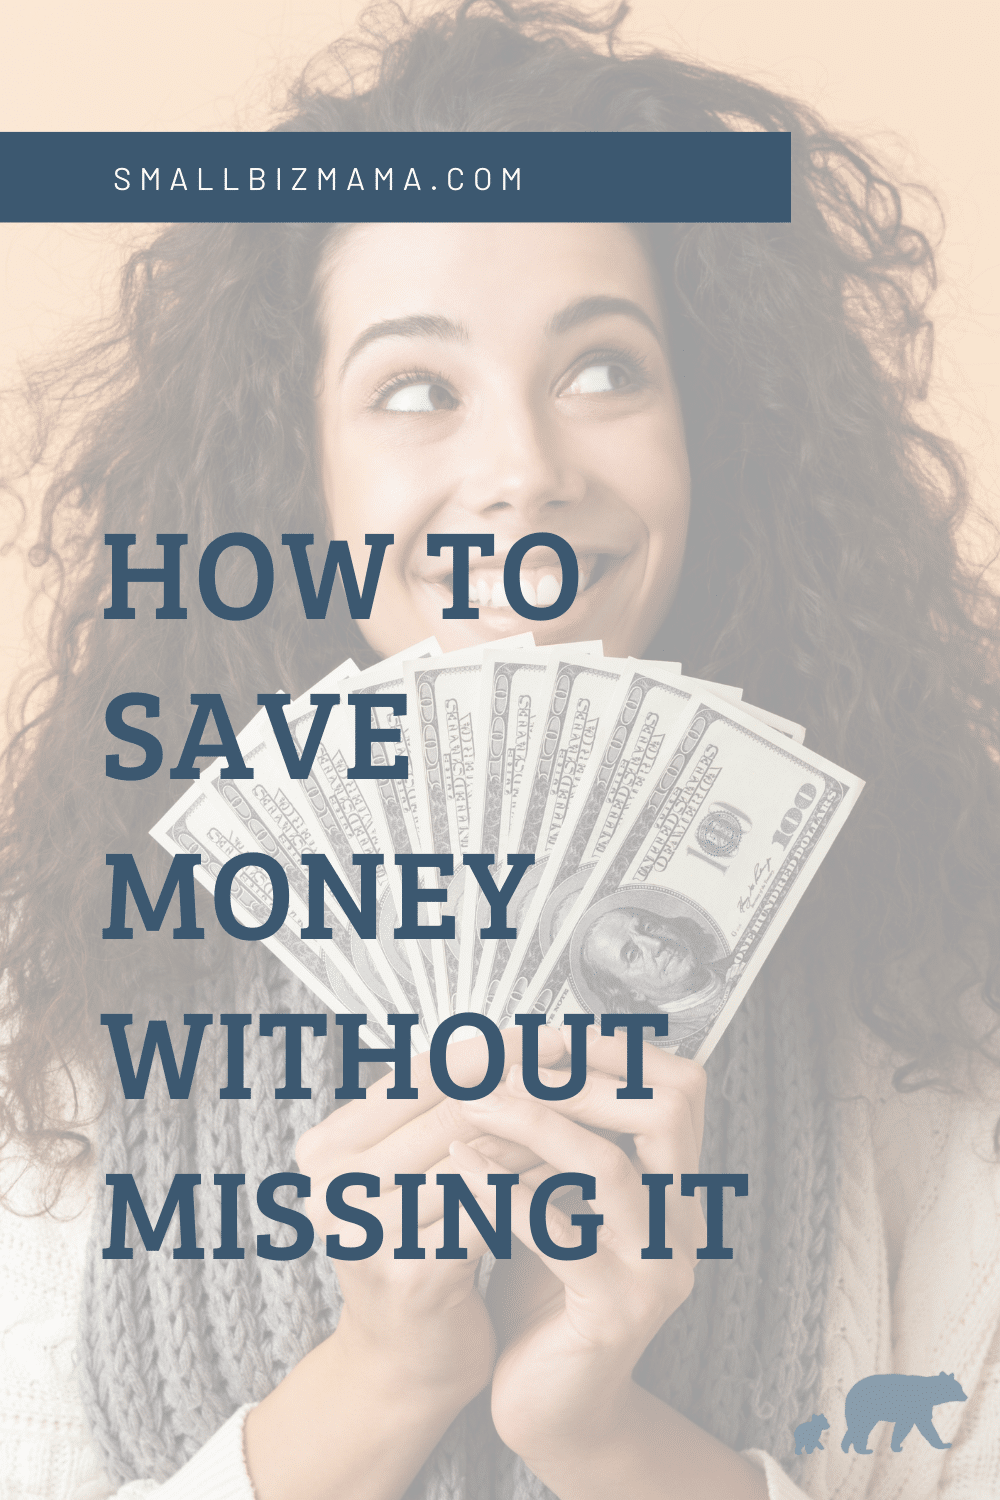 How to save money without missing it